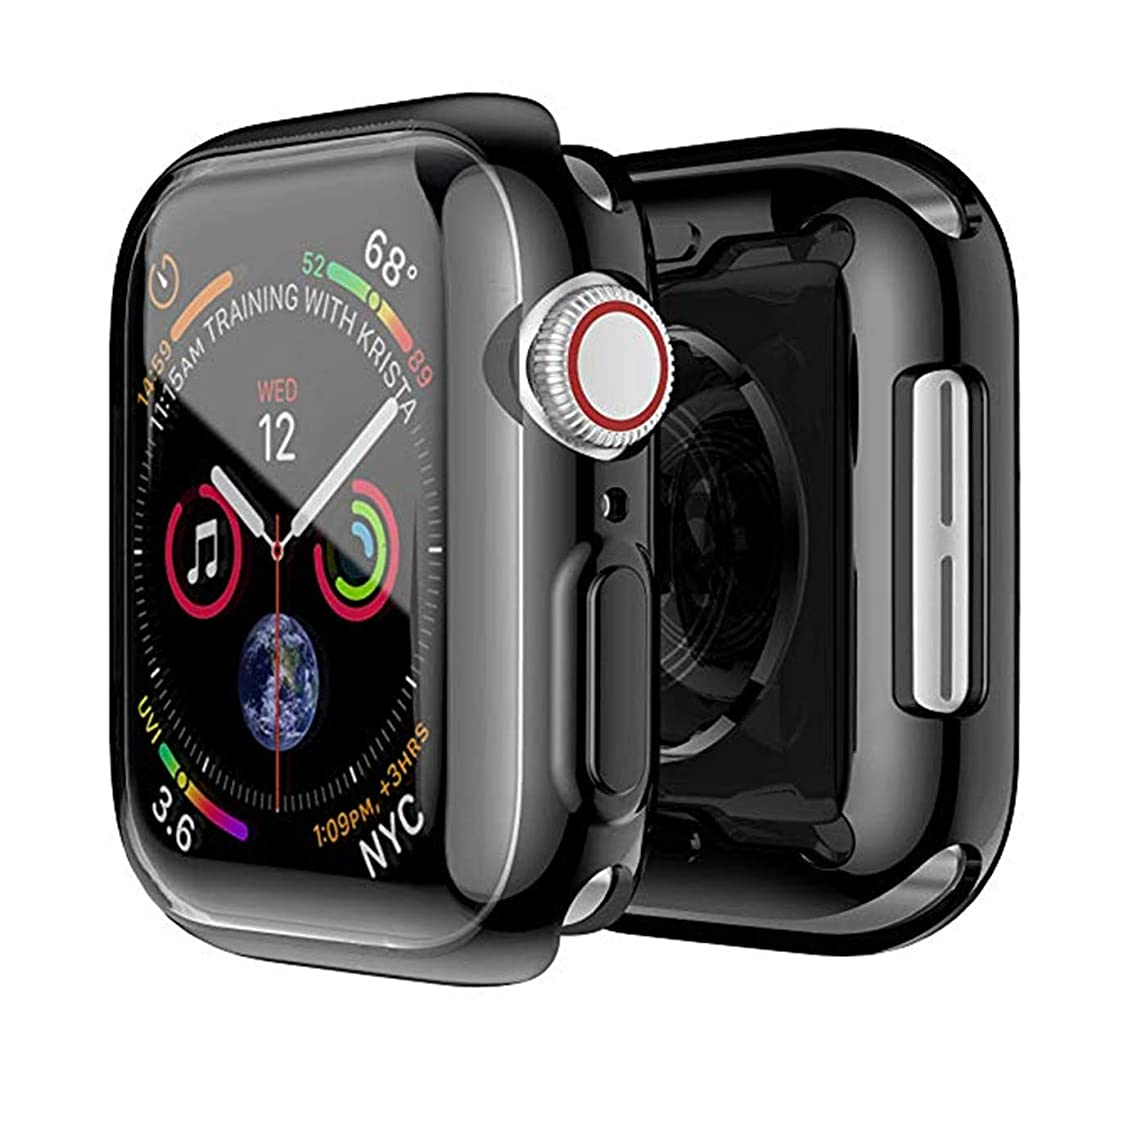 [2 Pack] Apple Watch 4 Case with Buit in TPU Screen Protector 44mm- All Around Protective Case High Definition Clear Ultra-Thin Cover Apple iWatch 44mm Series 4(Black, 44mm) (Black, 44mm Series 4) onwu1079364301